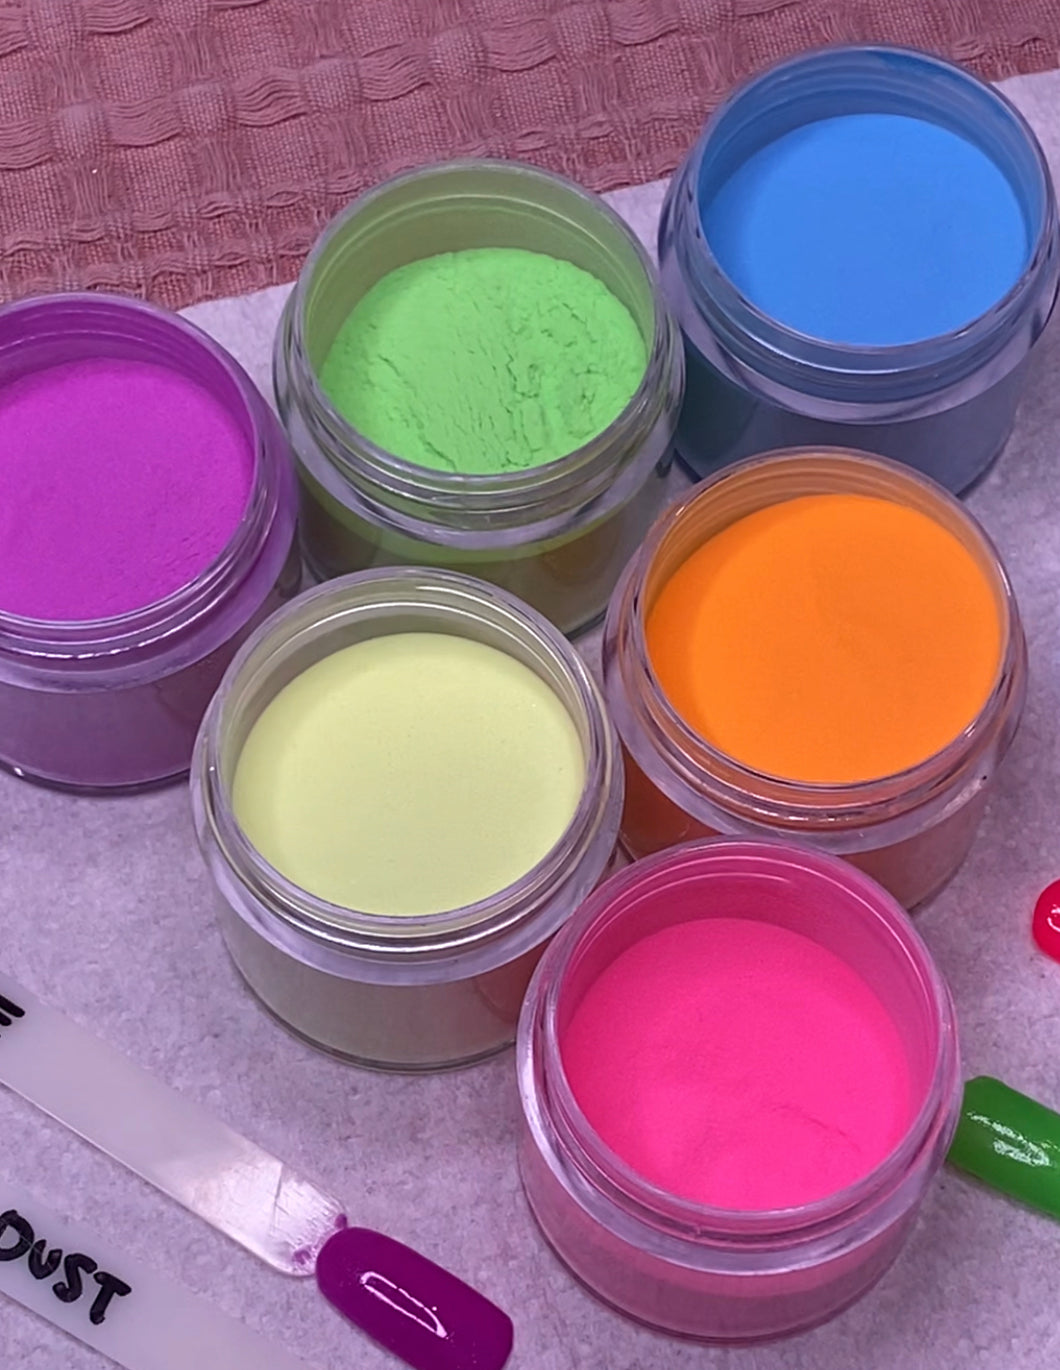 Highlighter Dip Powder Range - Neon Powders